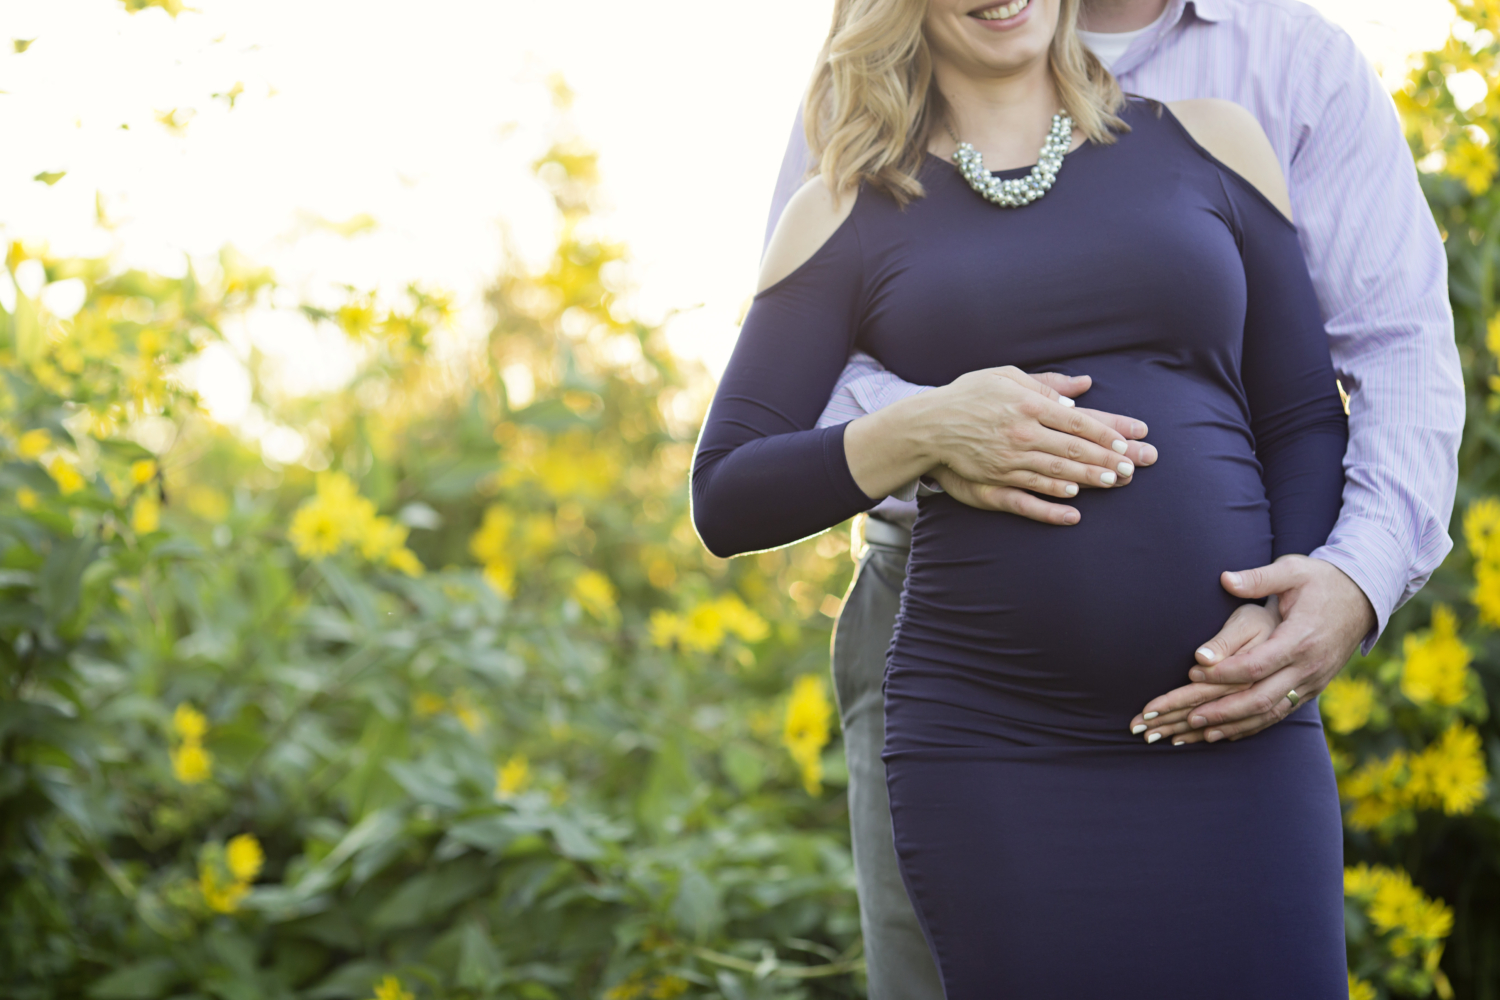 West-Hartford-CT-Maternity-Photography-51